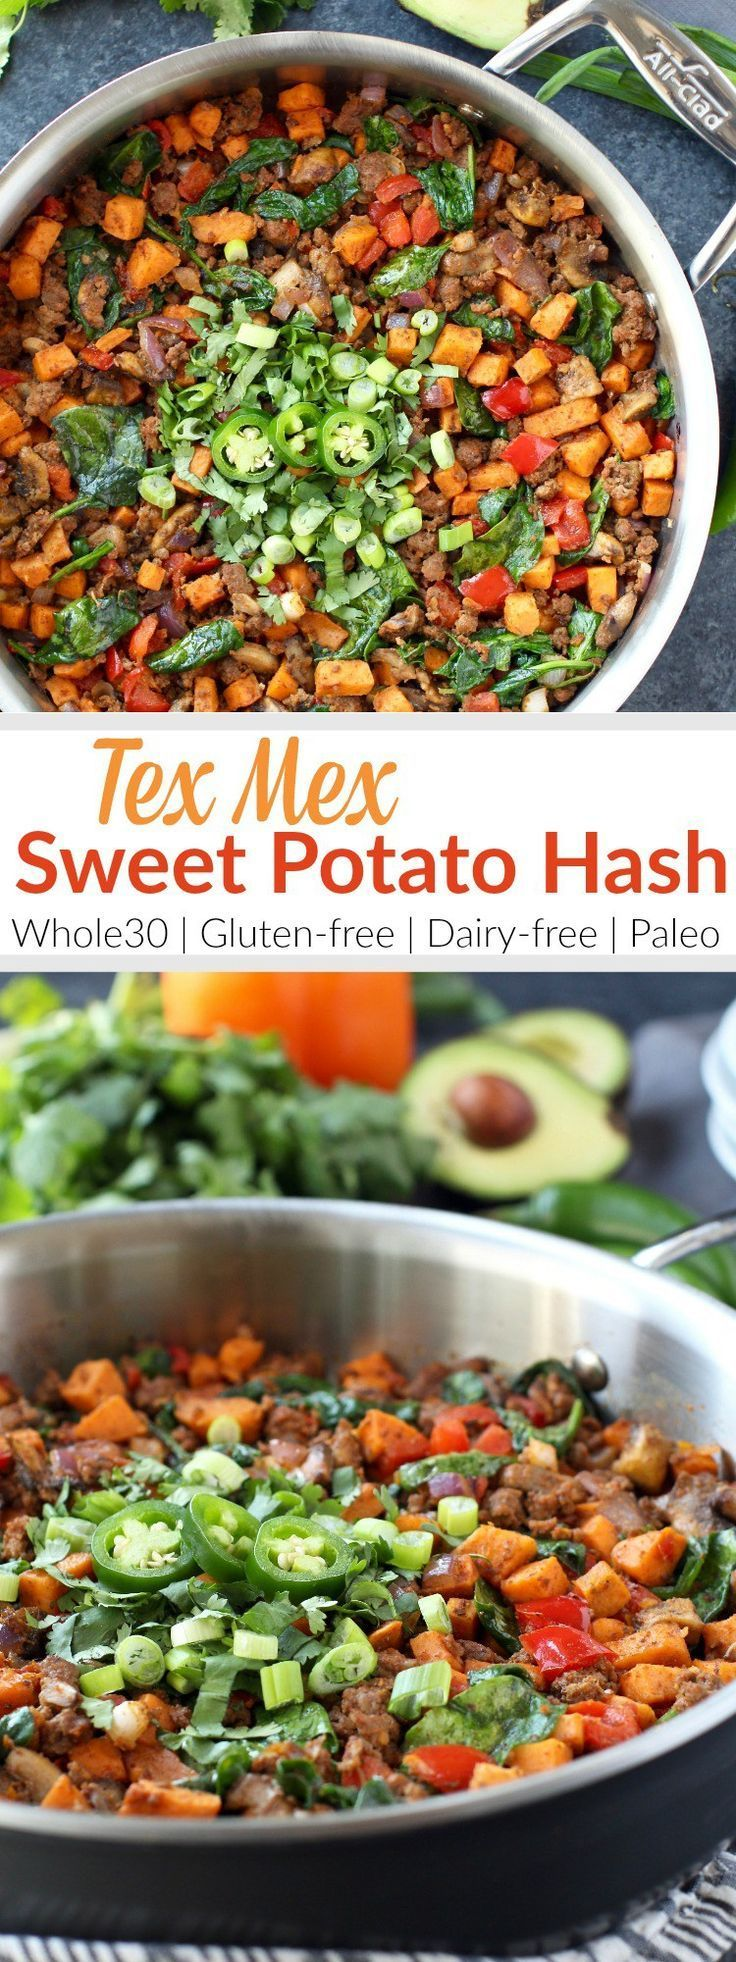 Tex Mex Sweet Potato Hash http://healthyquickly.com http://healthyquickly.com/5-essential-healthy-breakfast-tips-for-easy-fat-burning/